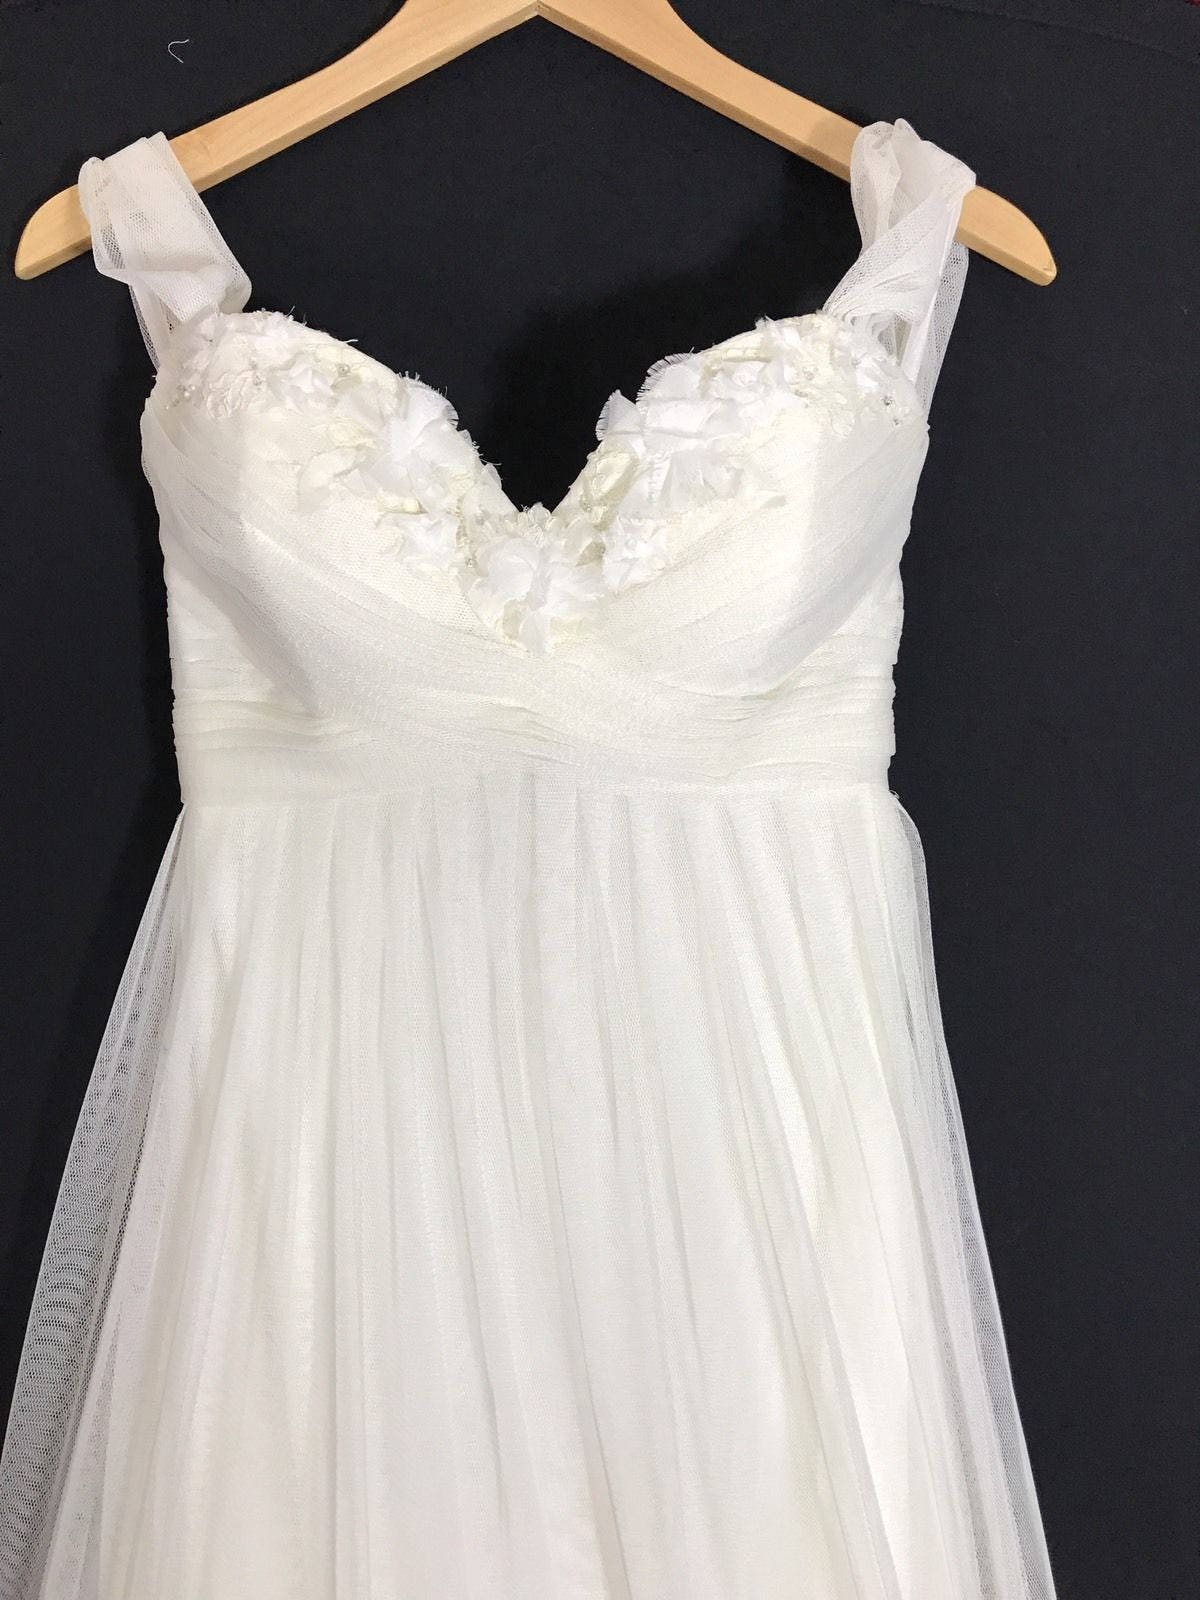 Vintage Empire Waist Wedding Dress